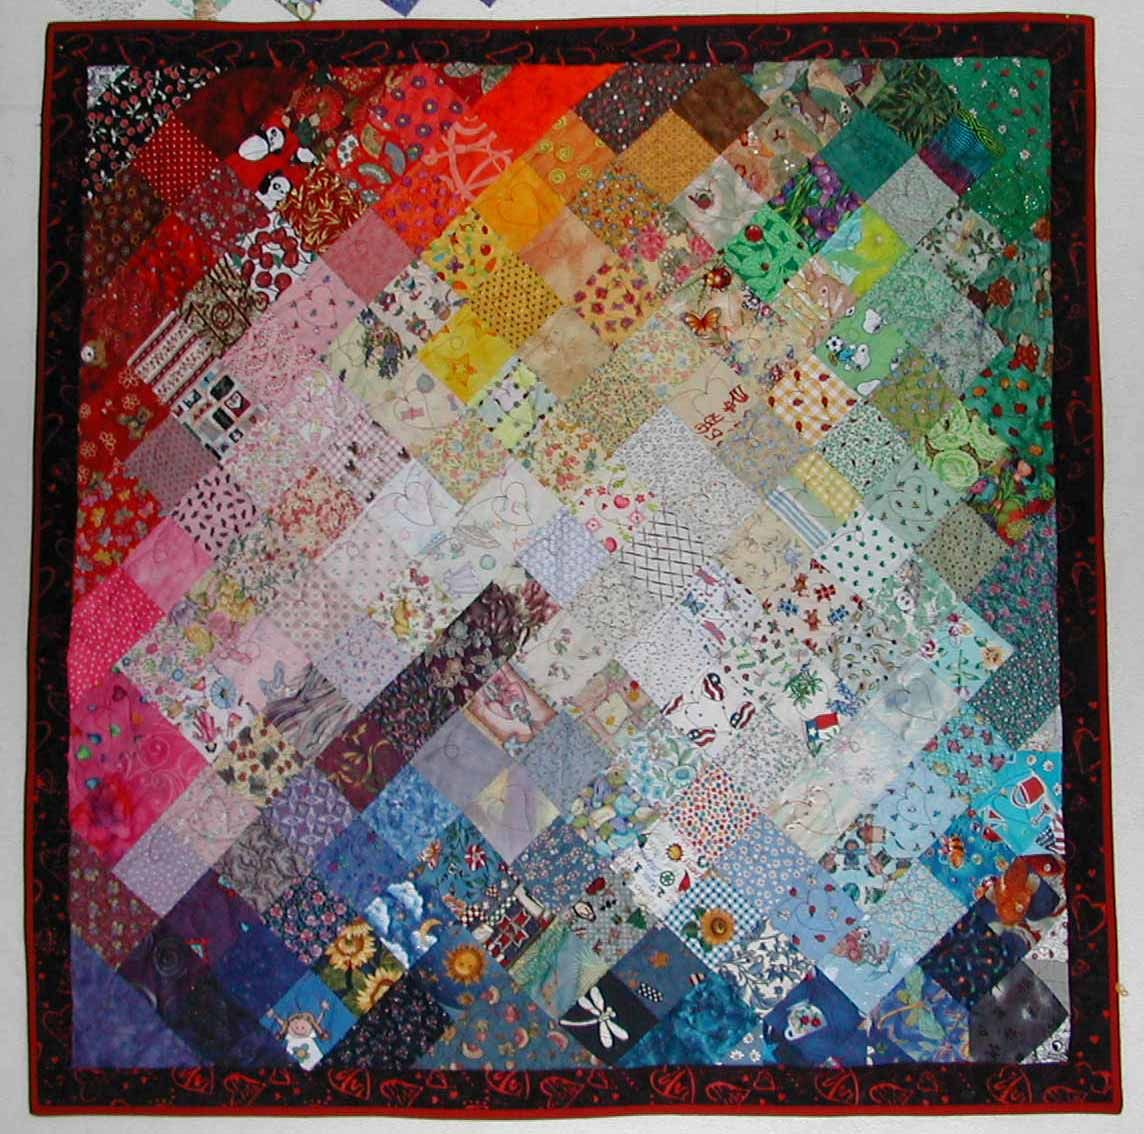 special quilts | Original Quilts enhanced my vision for a special ... : original quilts - Adamdwight.com